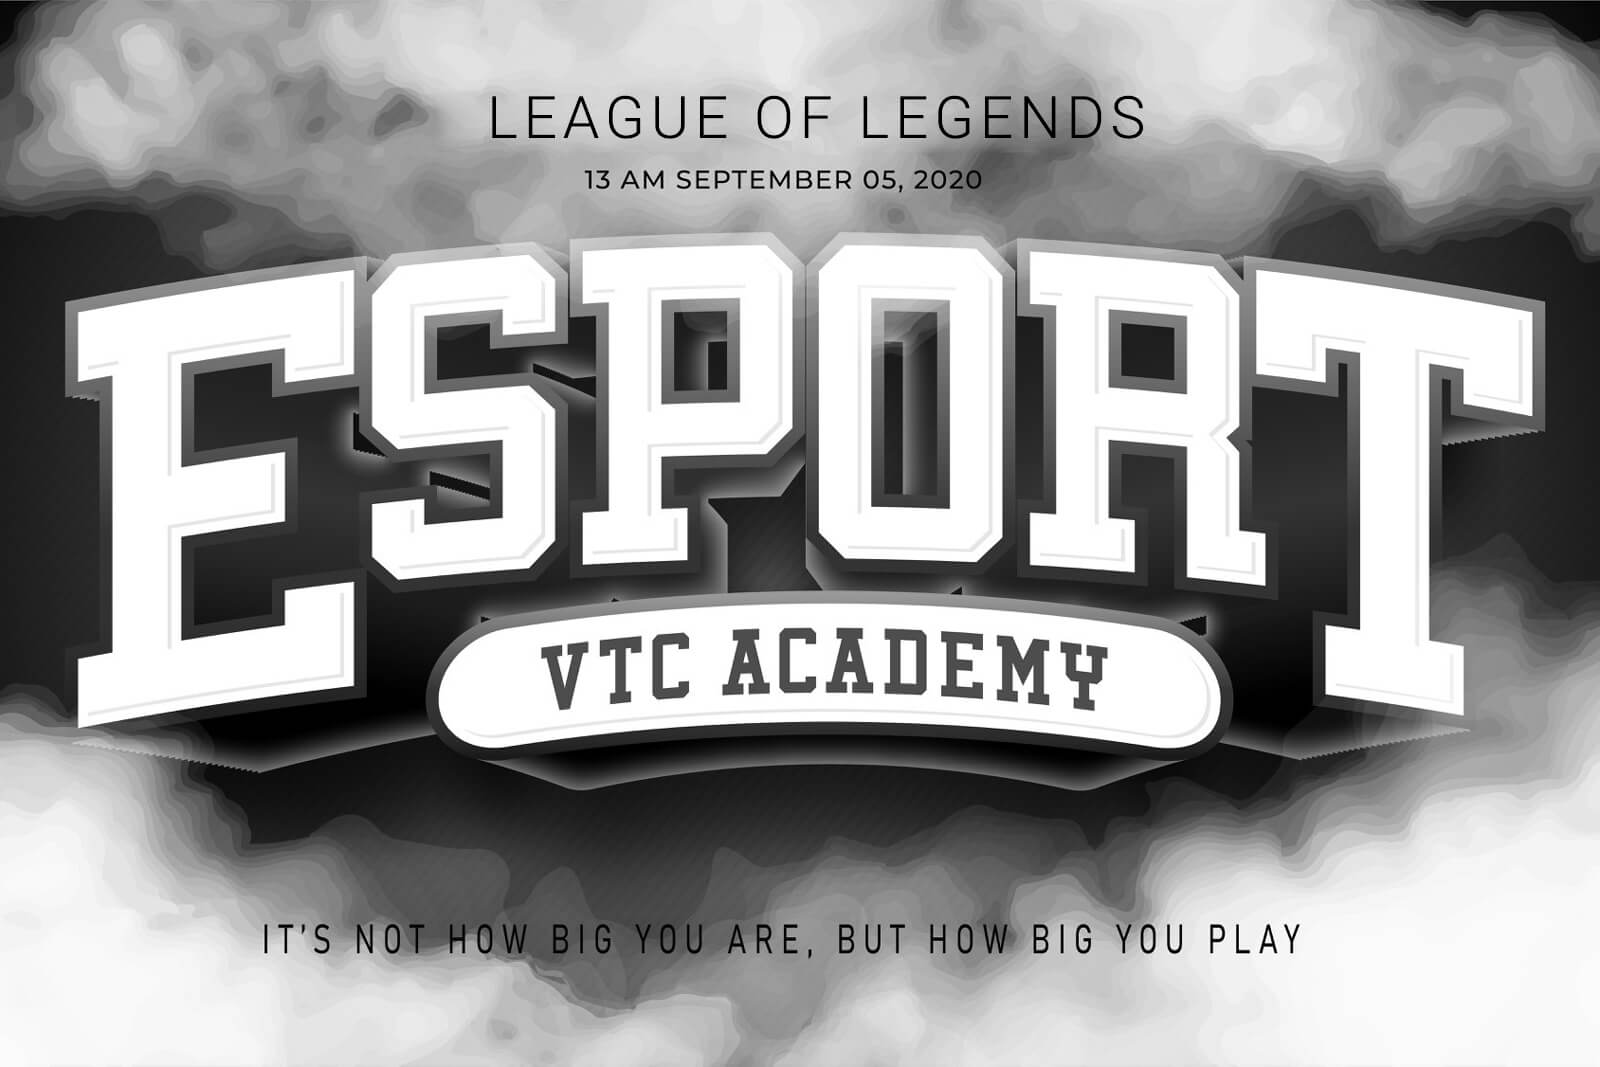 Esport Club organizes the League of Legends tournament in Ho Chi Minh City